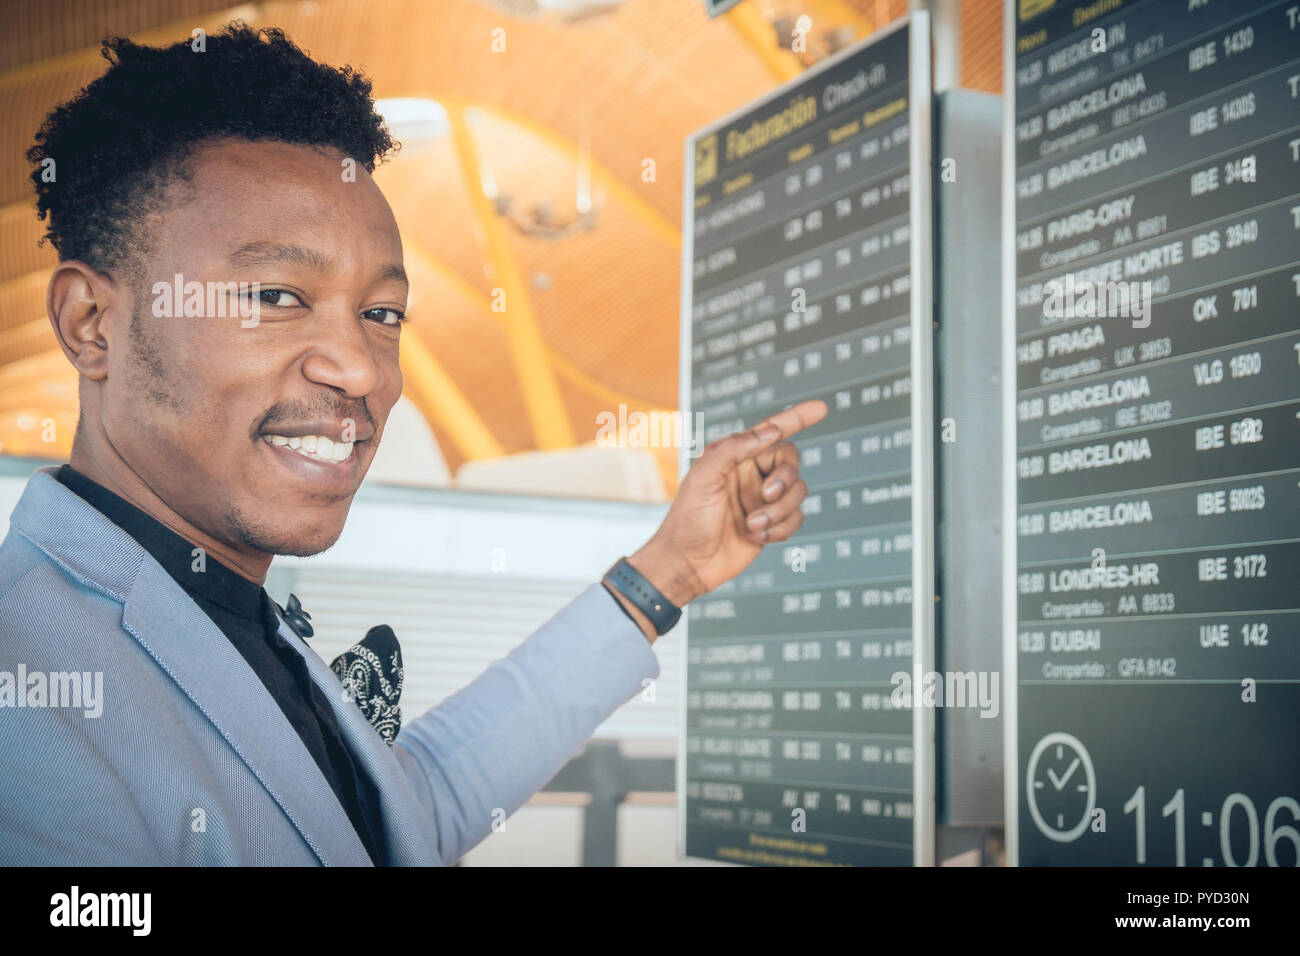 One young and attractive black businessman is looking for his flight to Barcelona in the airport terminal near check-in screens. He is wearing formal  - Stock Image